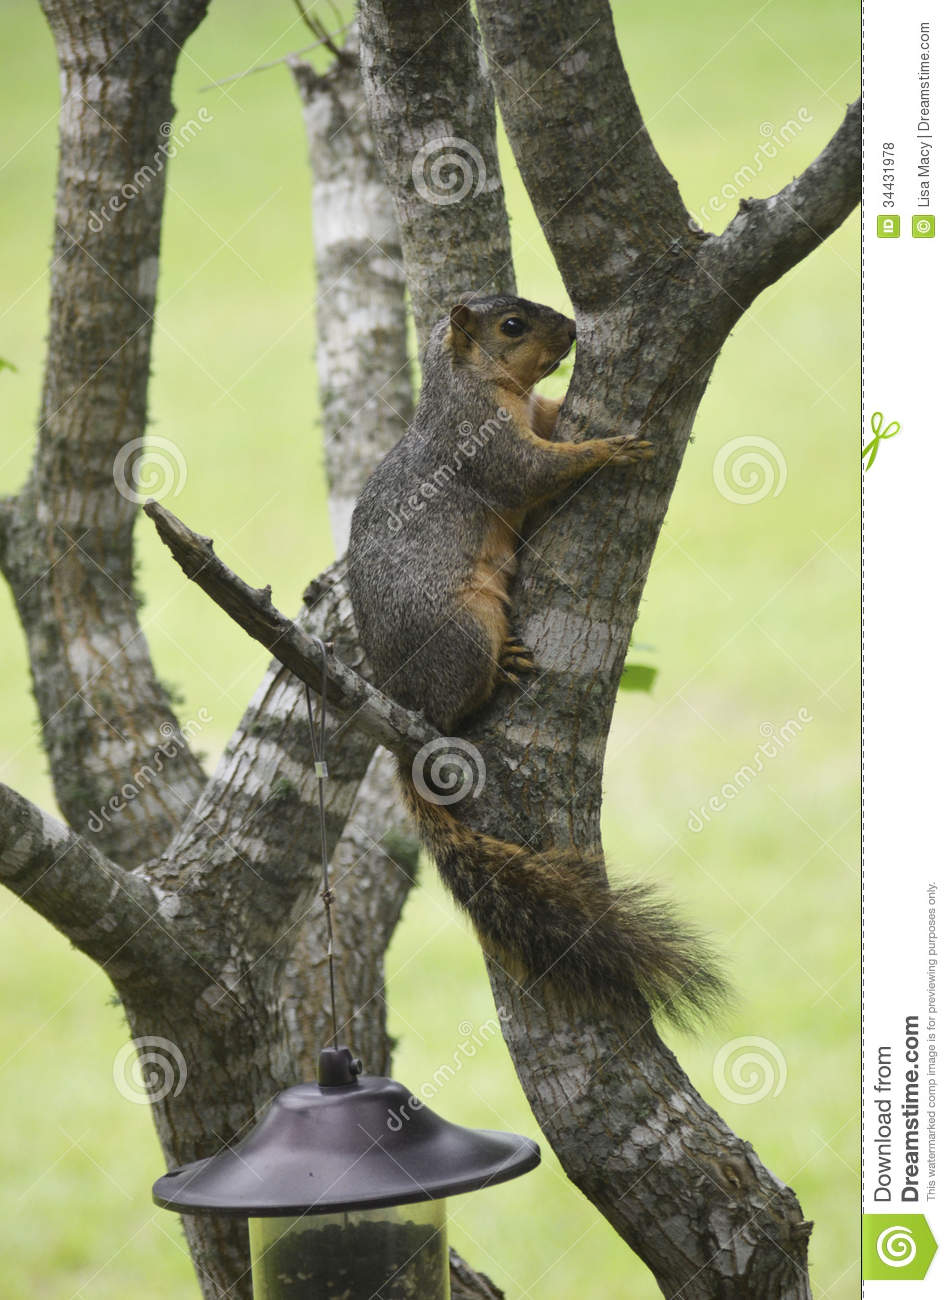 Squirrel trying to hide